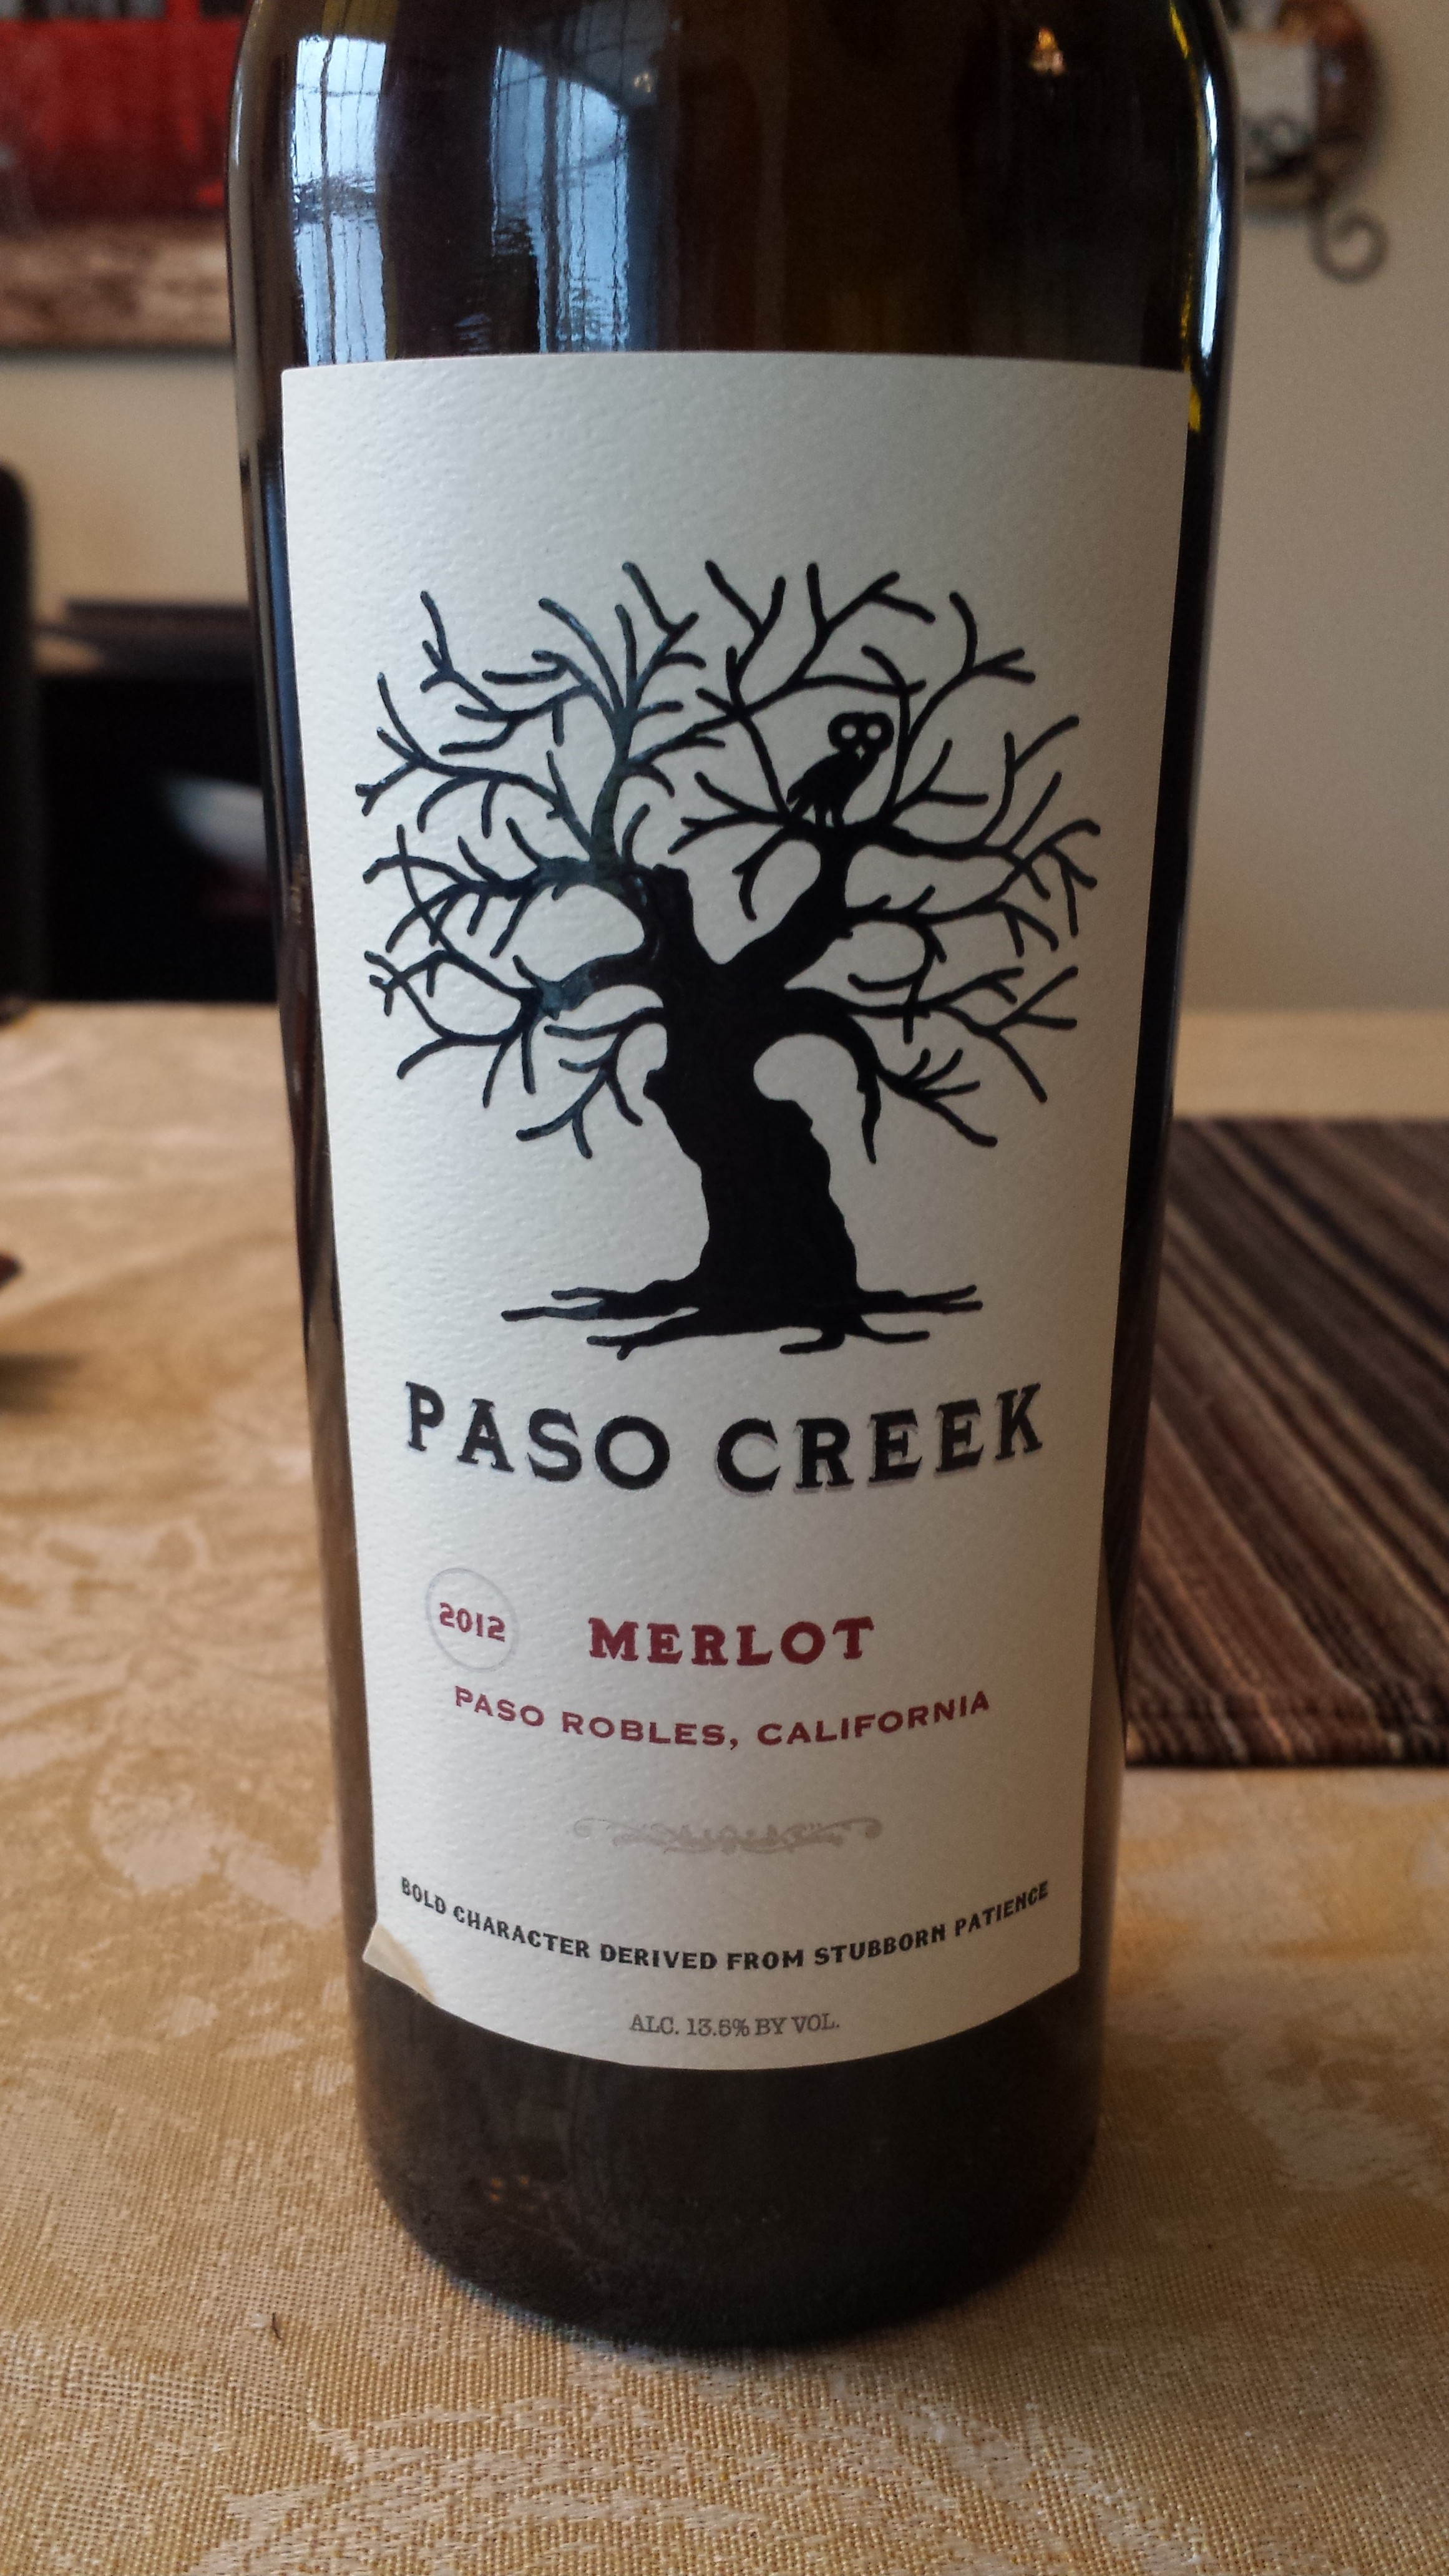 2012 Paso Creek Merlot